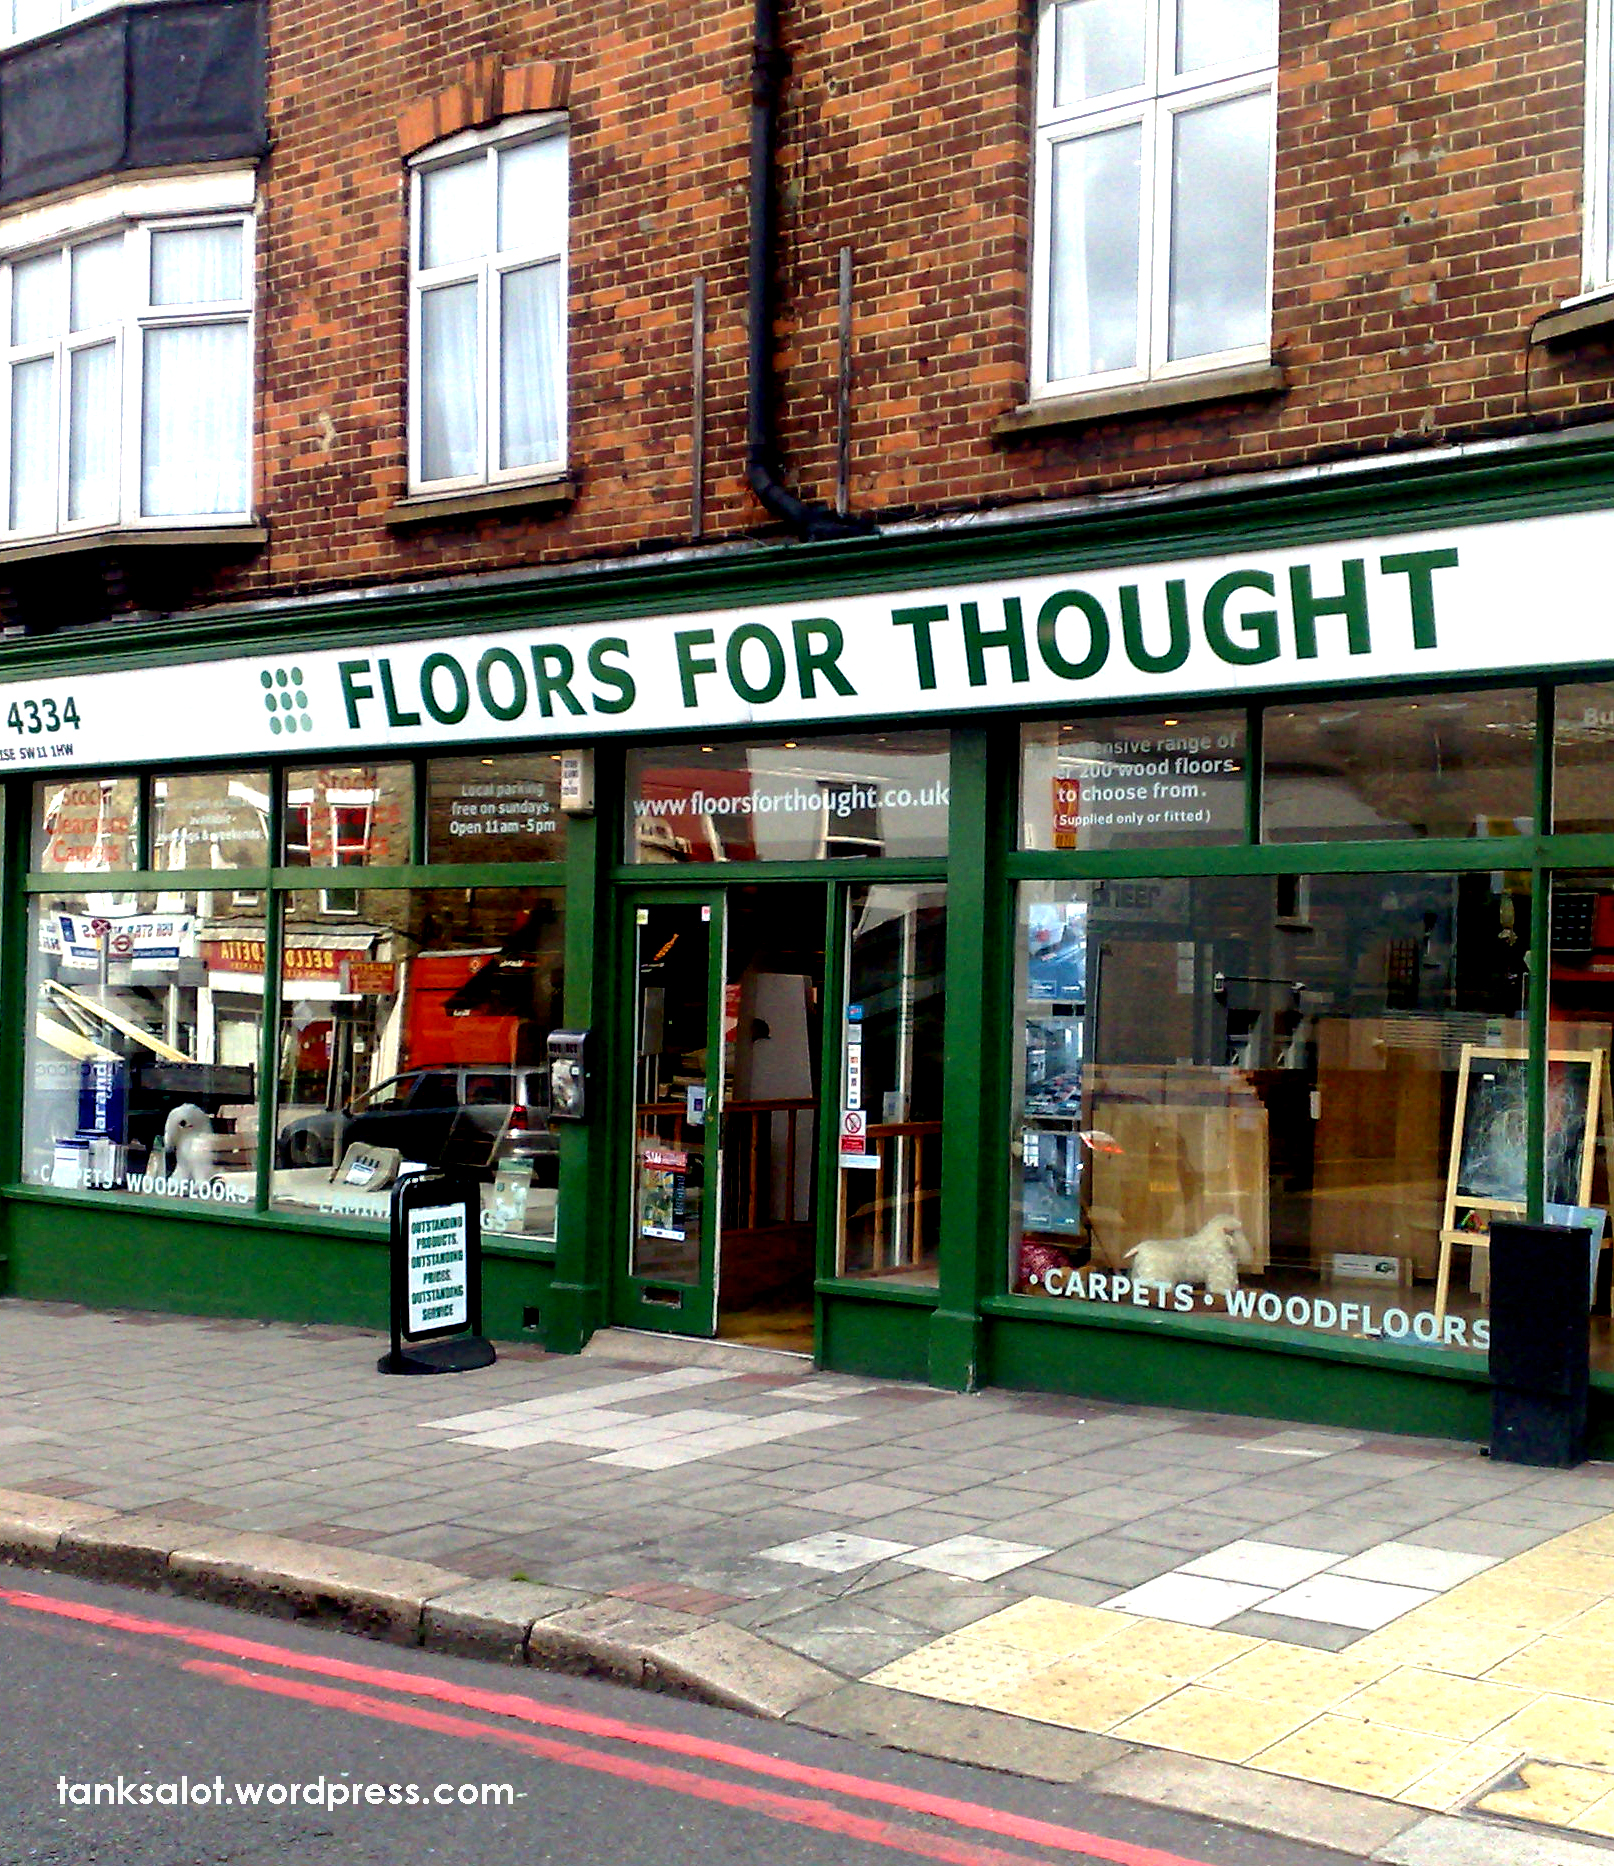 Floors for Thought